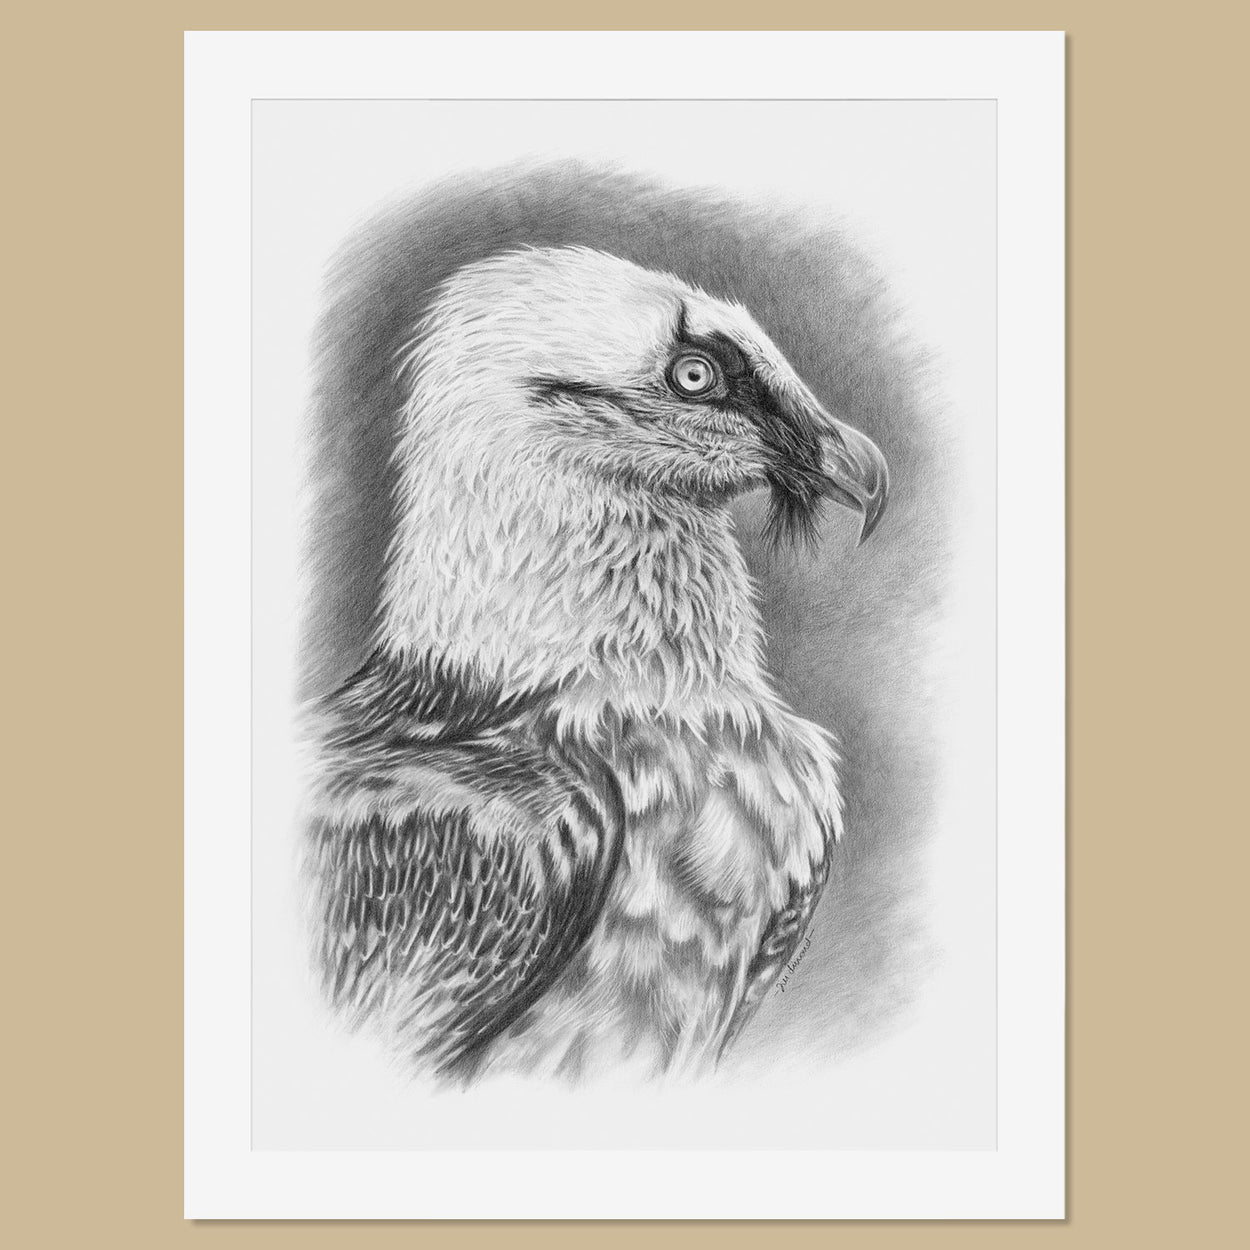 Original Bearded Vulture Pencil Drawing - The Thriving Wild - Jill Dimond